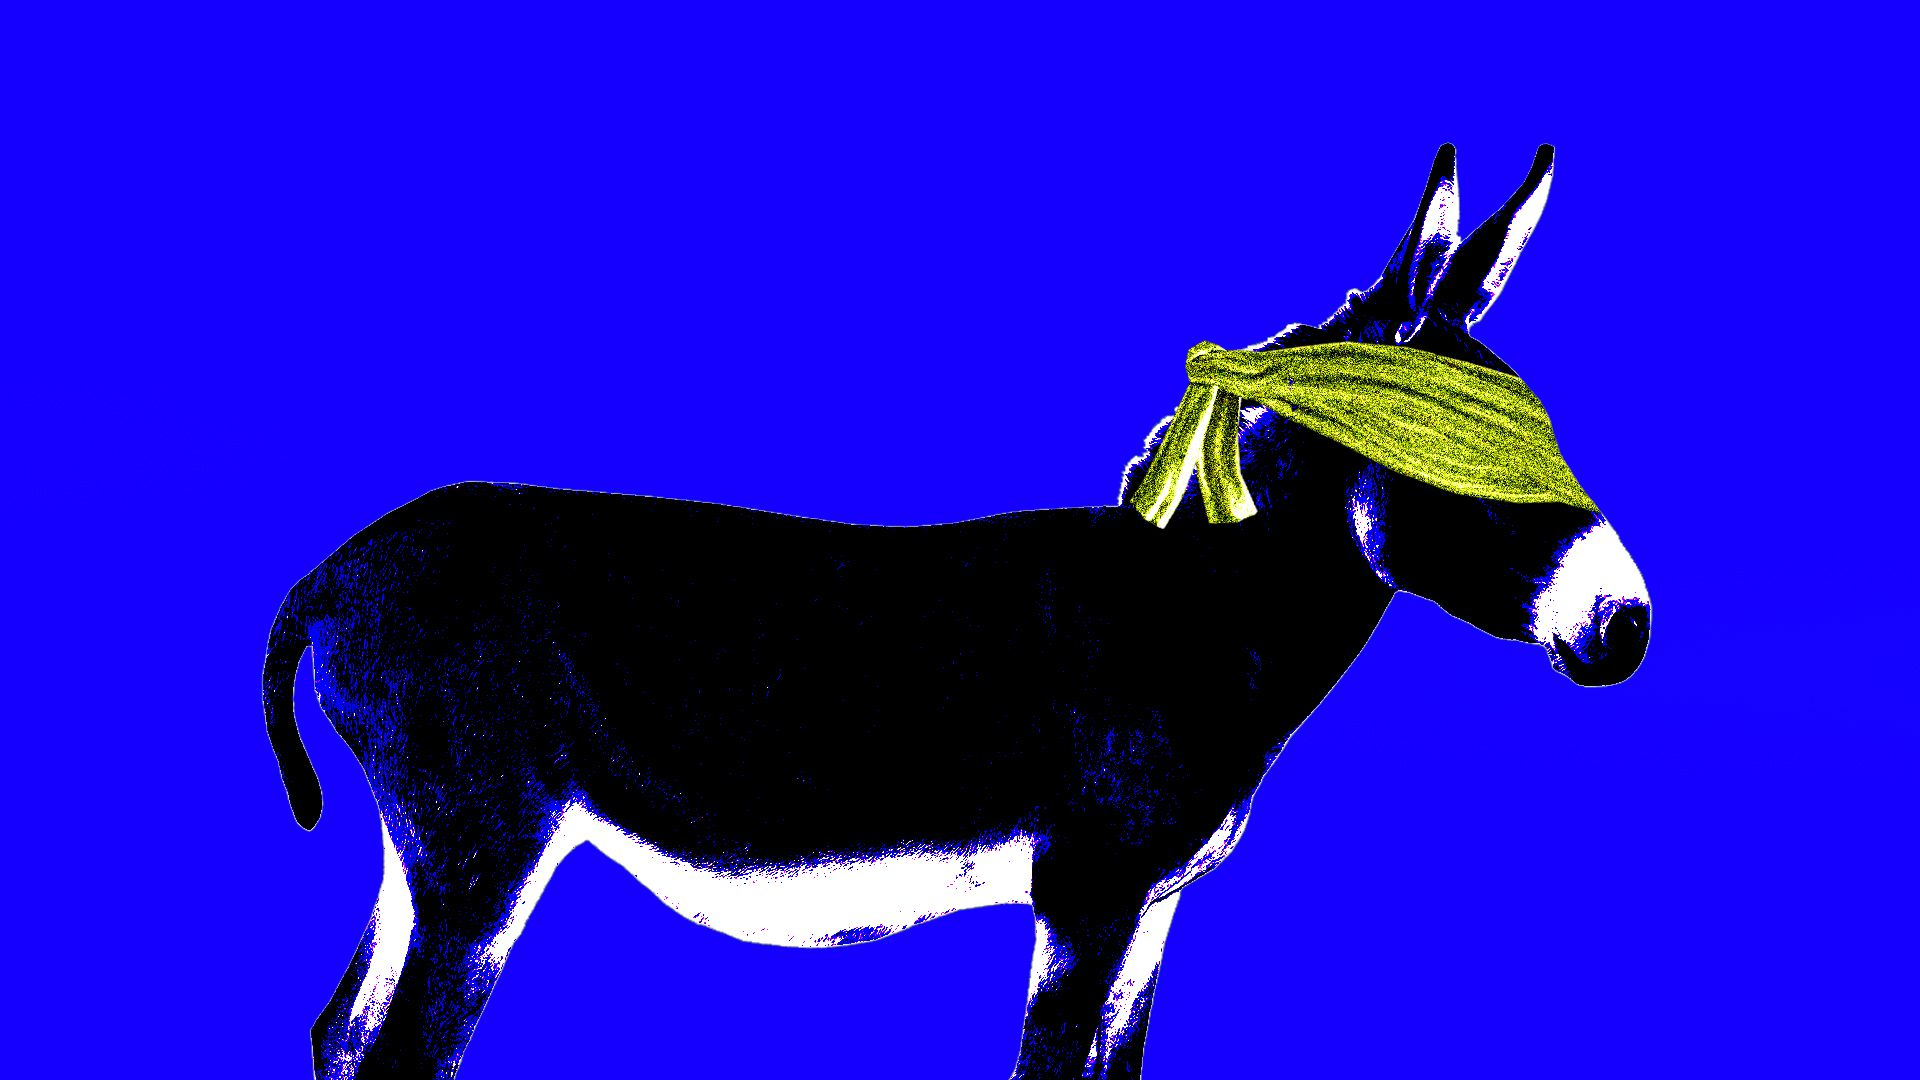 An illustration of a donkey blindfolded